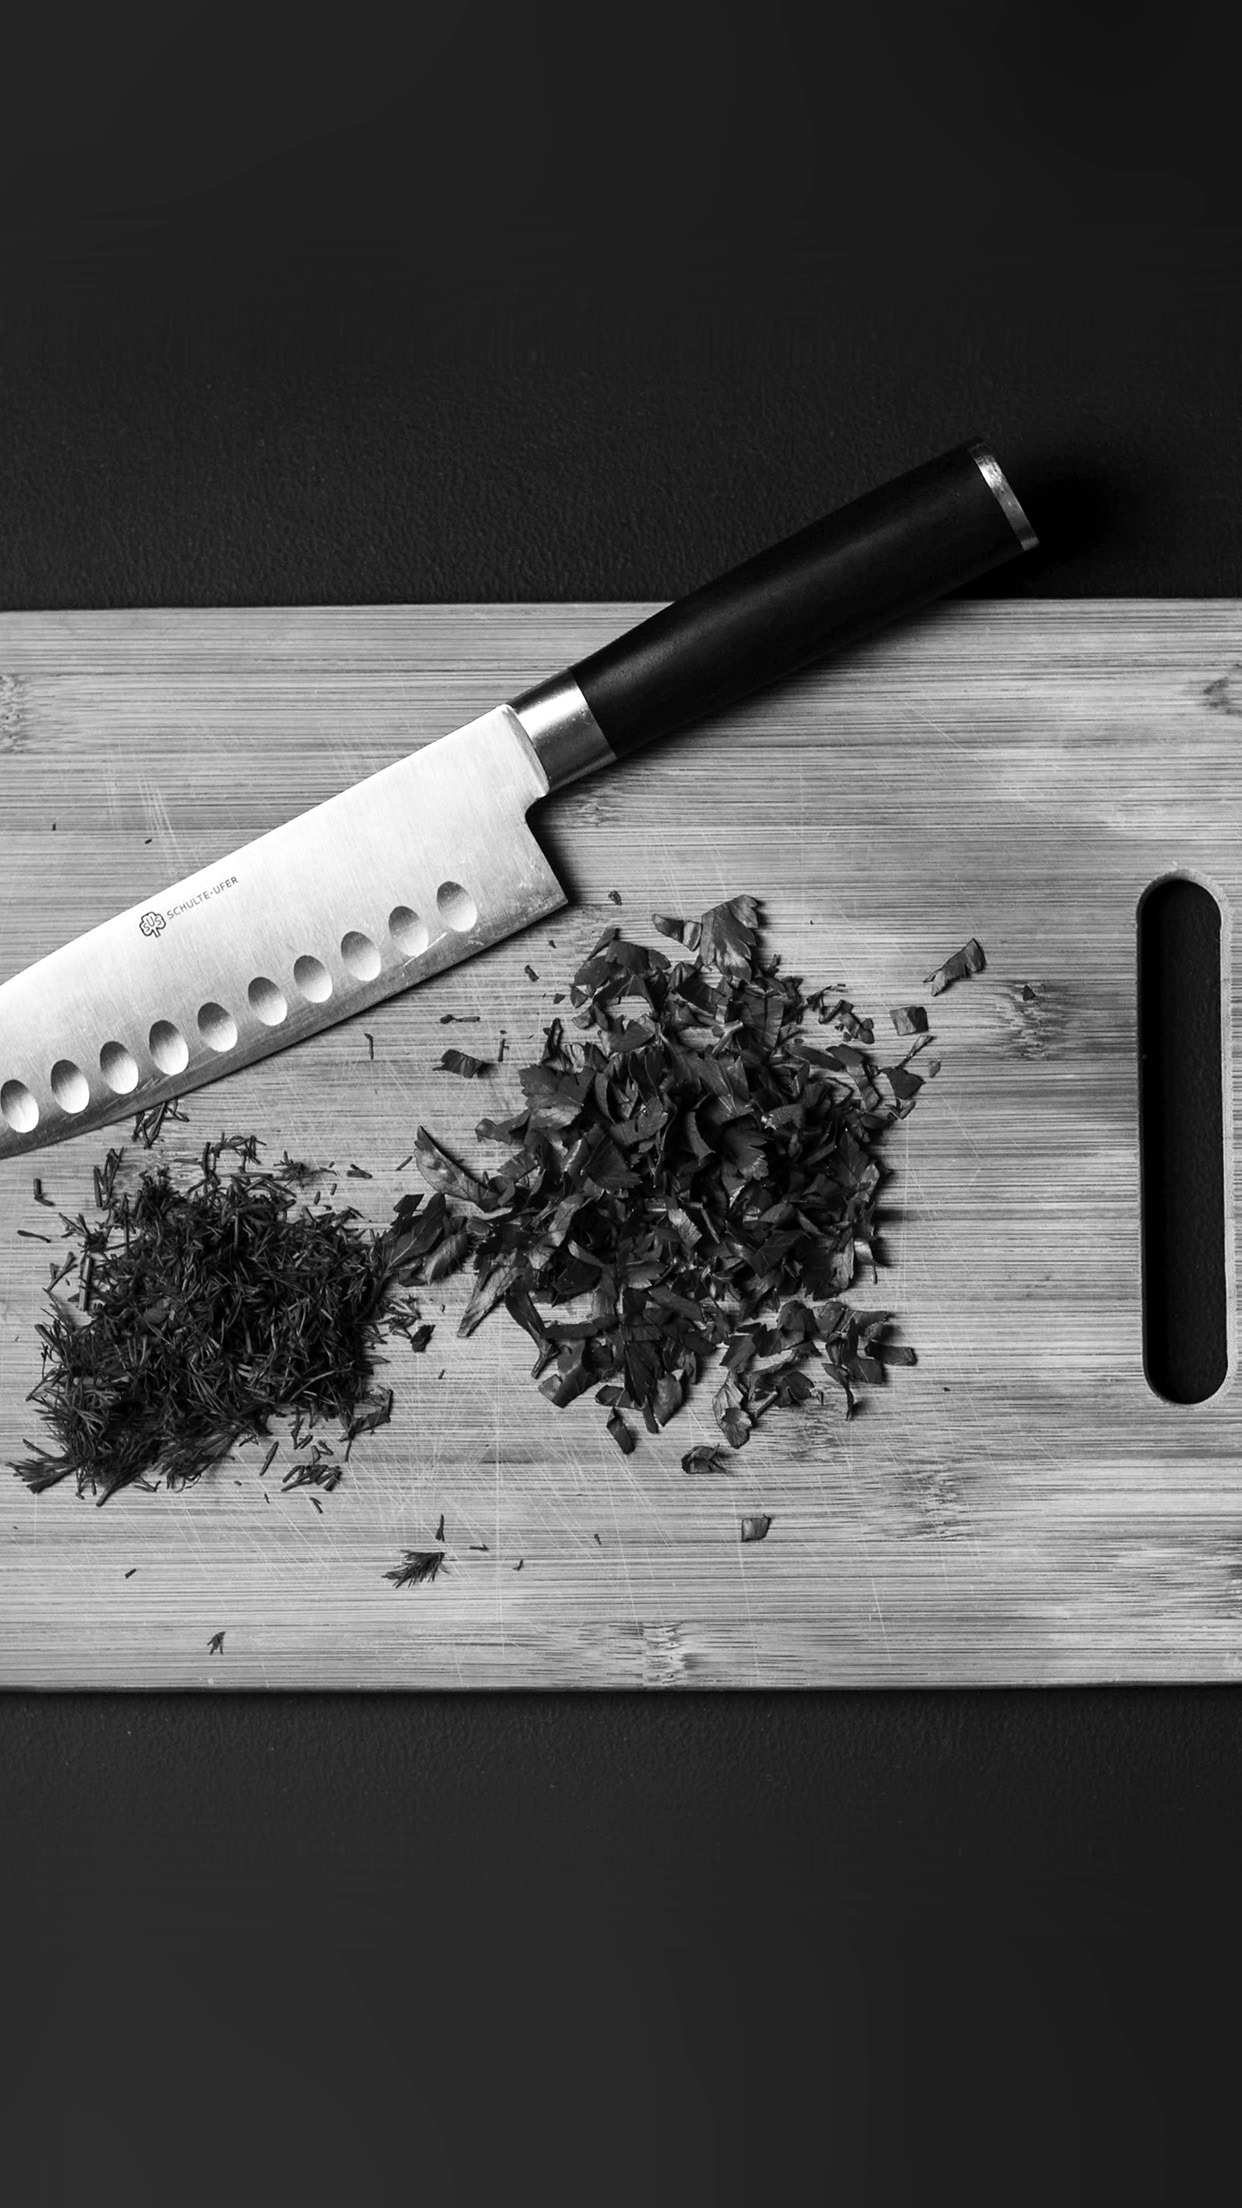 Chef Knife Wallpaper Iphone 3016964 Hd Wallpaper Backgrounds Download